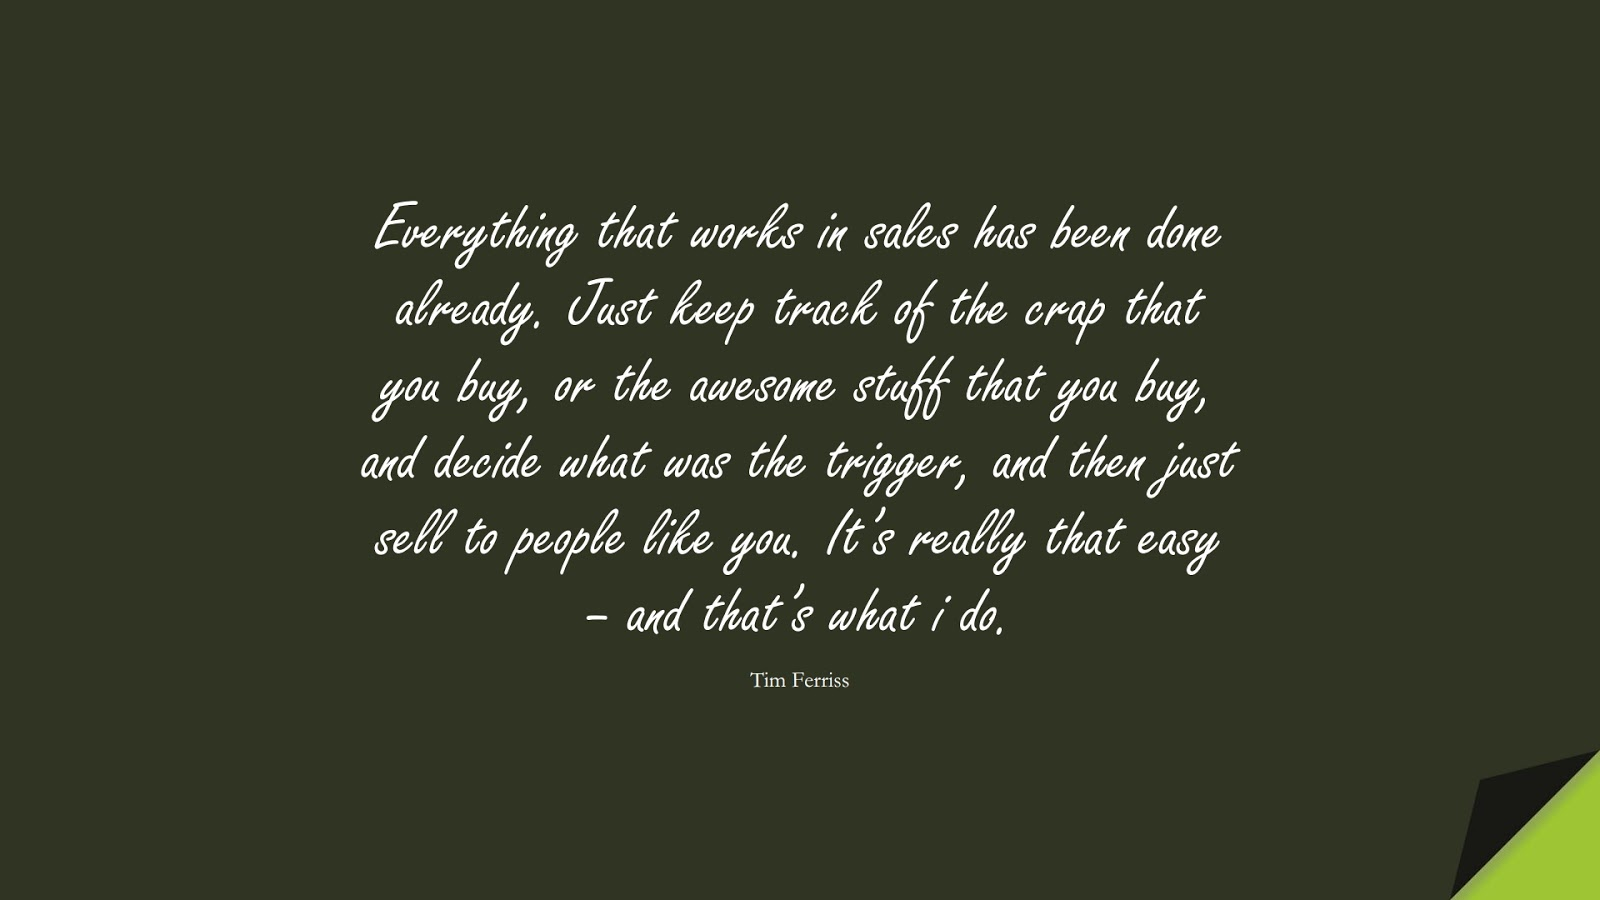 Everything that works in sales has been done already. Just keep track of the crap that you buy, or the awesome stuff that you buy, and decide what was the trigger, and then just sell to people like you. It's really that easy – and that's what i do. (Tim Ferriss);  #TimFerrissQuotes